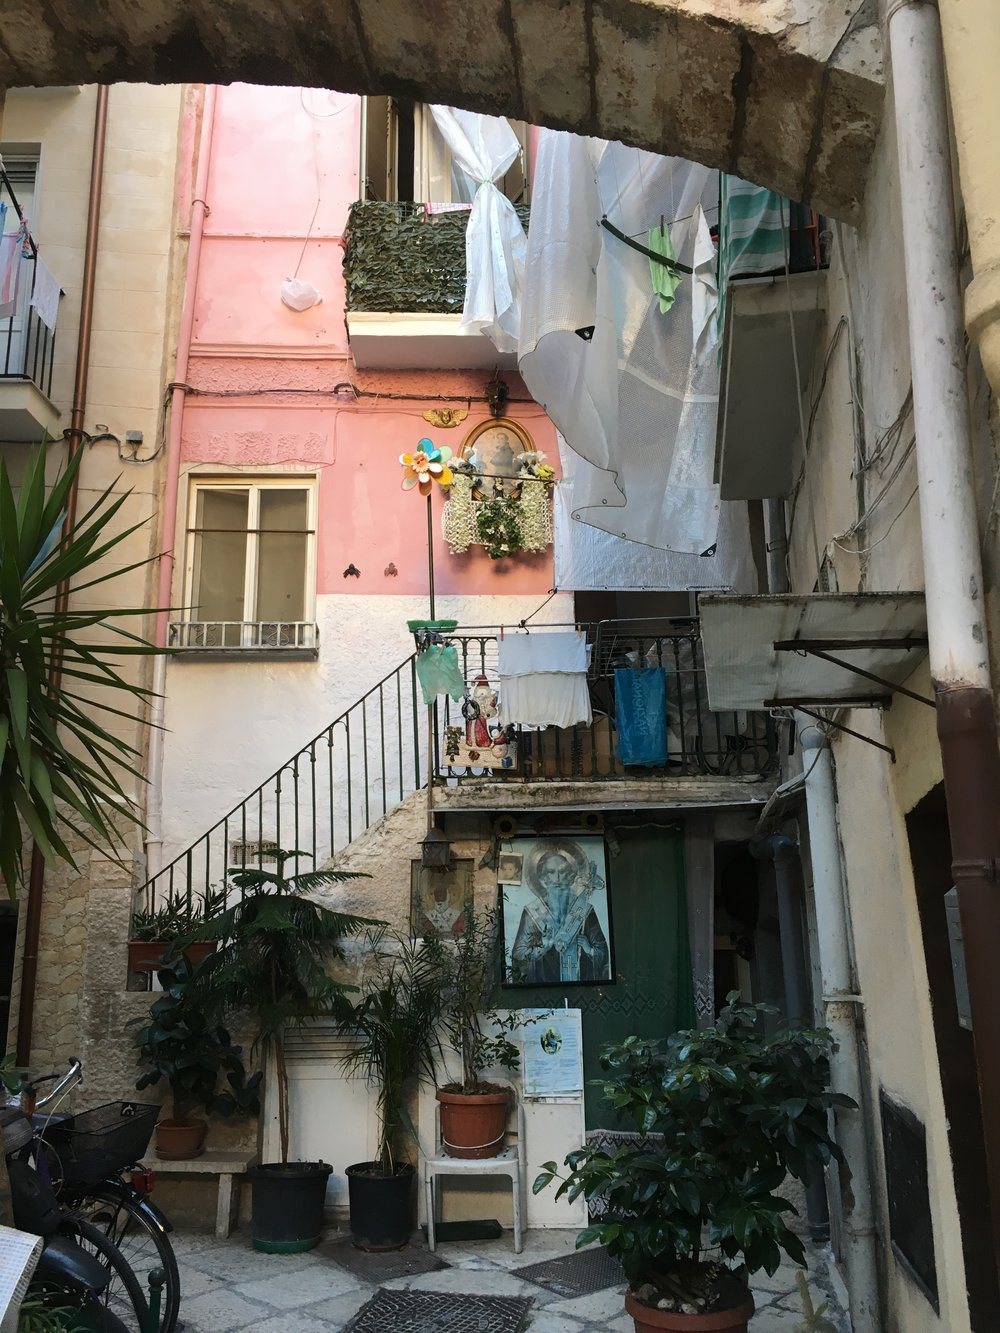 Neighboring Courtyard with Three Posters of Different Saints, and Laundry